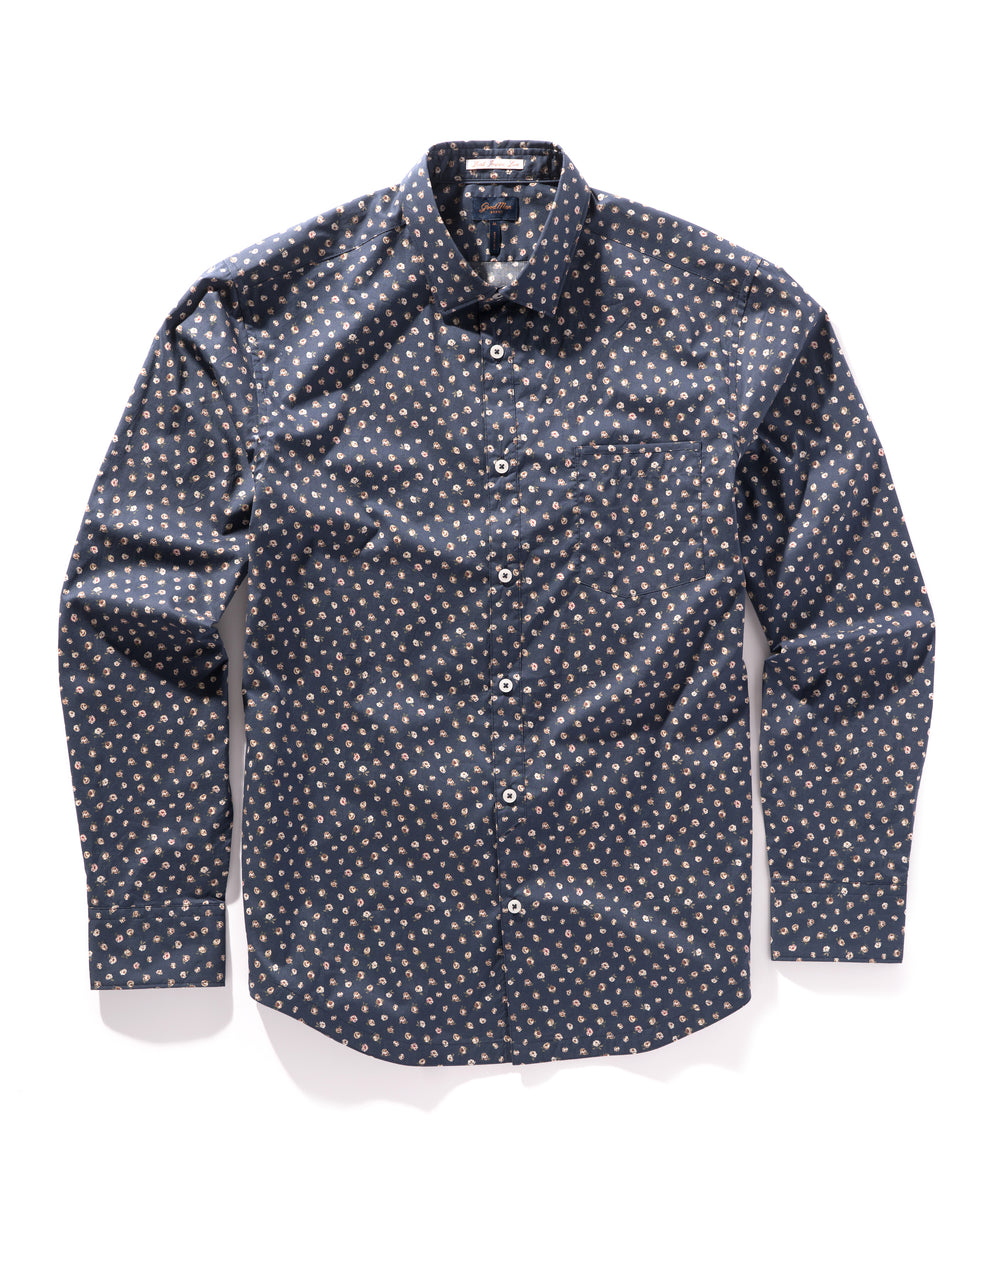 Navy Garden Rose On-Point Print Shirt - Good Man Brand - Navy Garden Rose On-Point Print Shirt